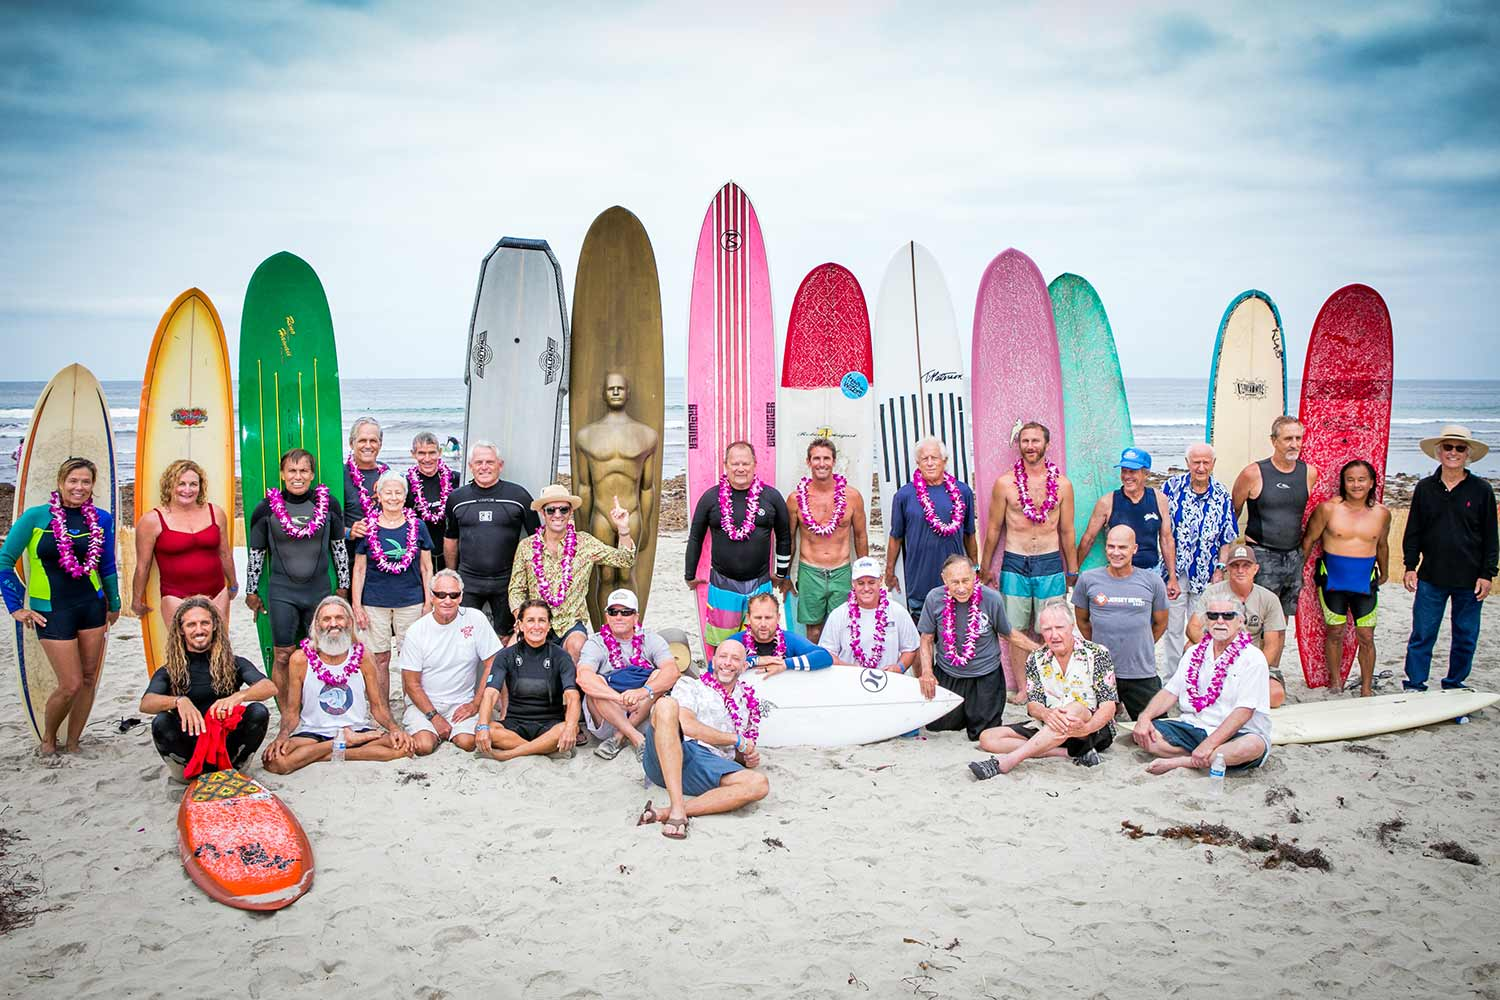 surf legends at the beach